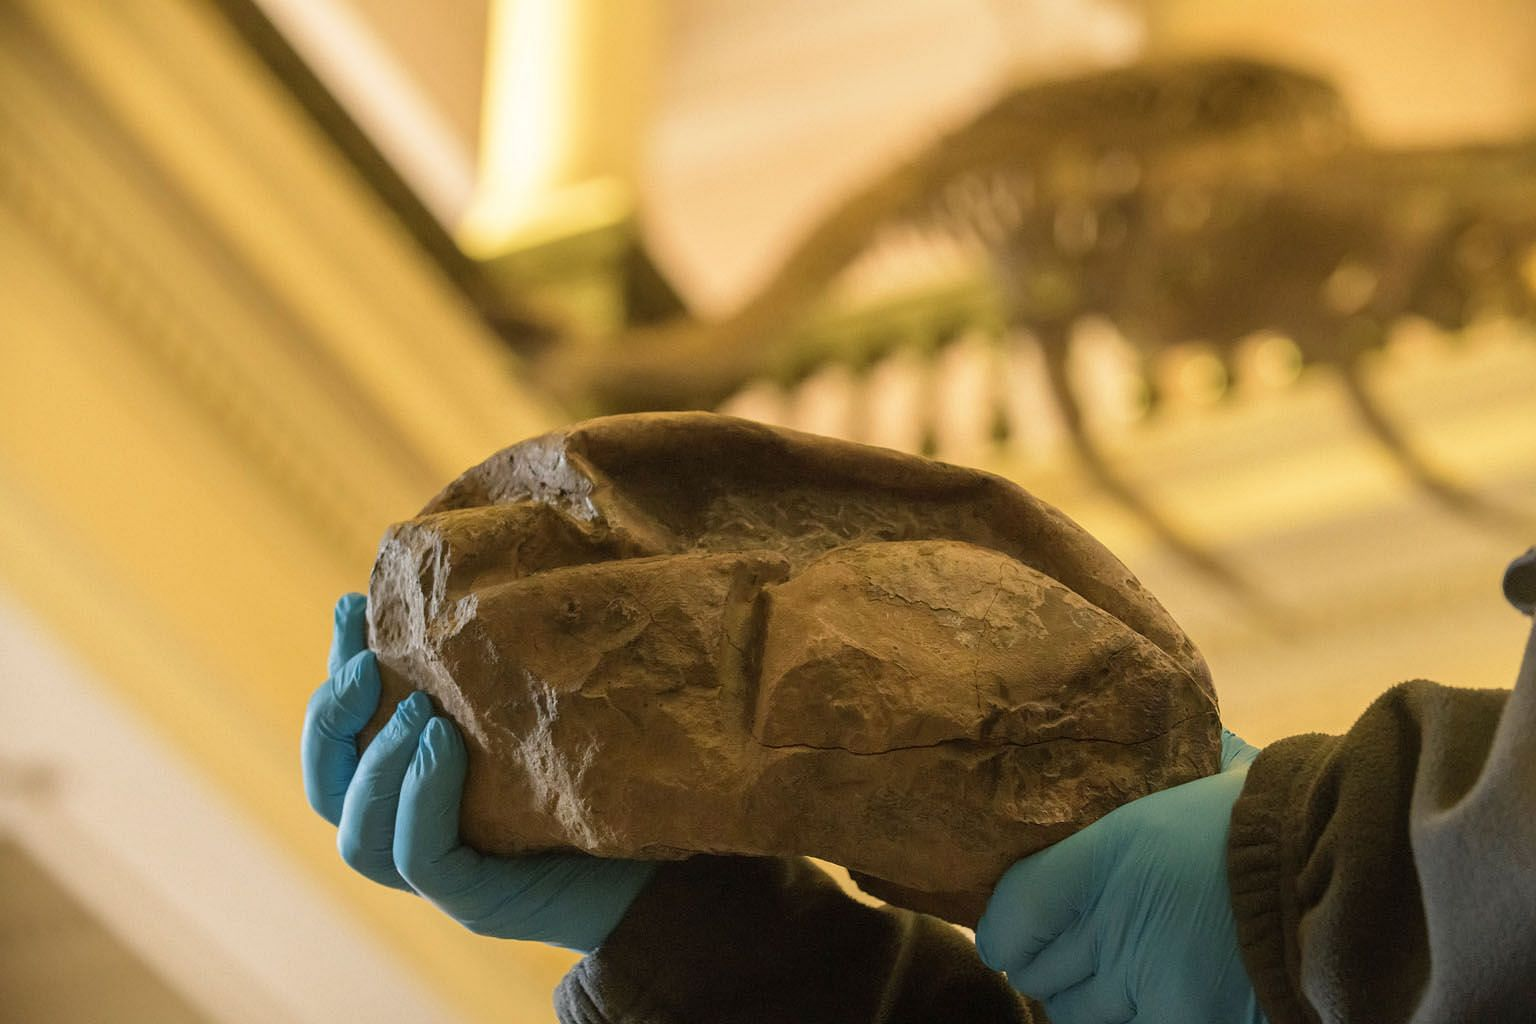 The 29cm by 20cm fossilised egg, which had been found on Seymour Island off Antarctica in 2011, is thought to have been laid by a mosasaur or a plesiosaur - marine reptiles that went extinct at the same time as the dinosaurs, after an asteroid struck